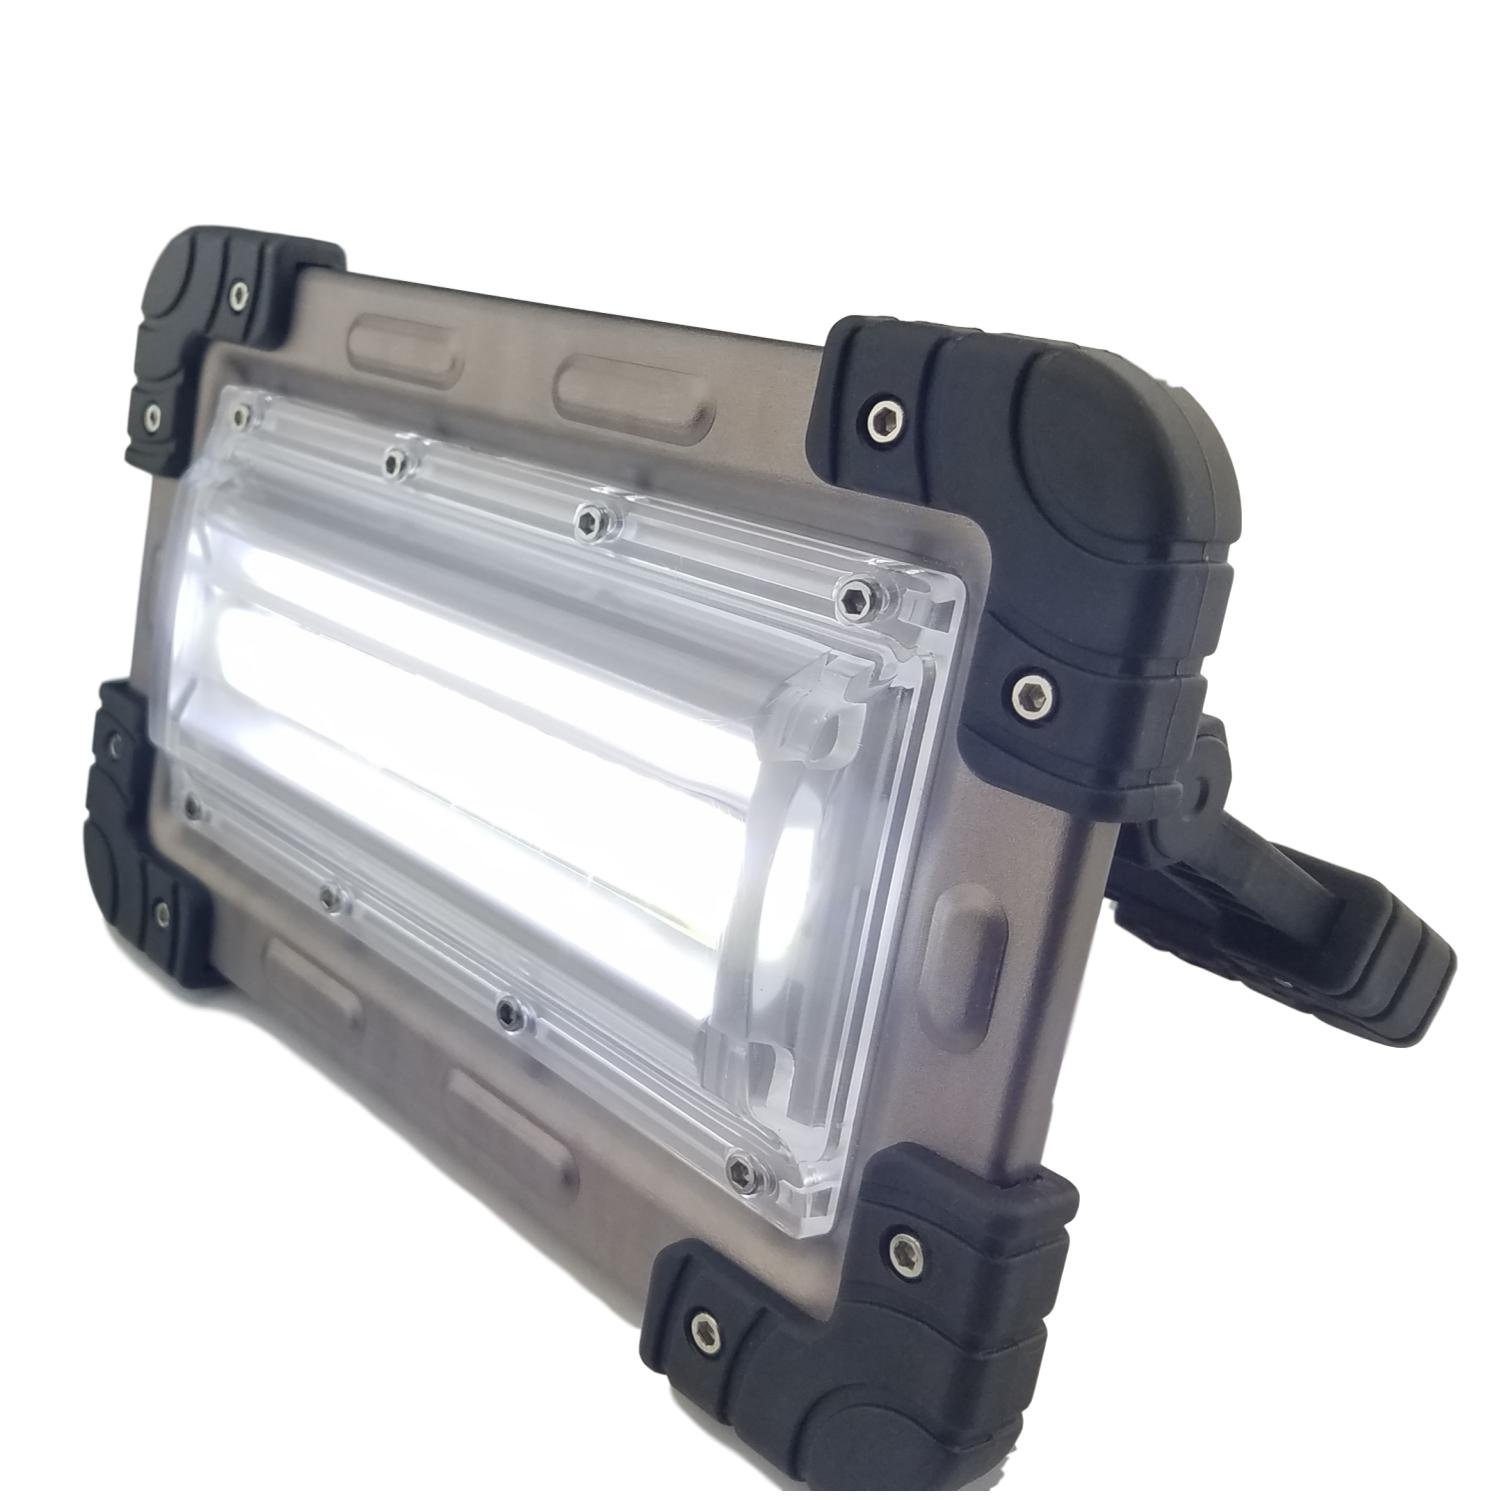 30 Watt Portable 2000 Lumen LED Work Light,Outdoor Flood Light, for Workshop,Construction Site, Building, Camping,Hiking,Car Repair, Rechargeable Battery Power Bank by Nighthawk (Image #1)